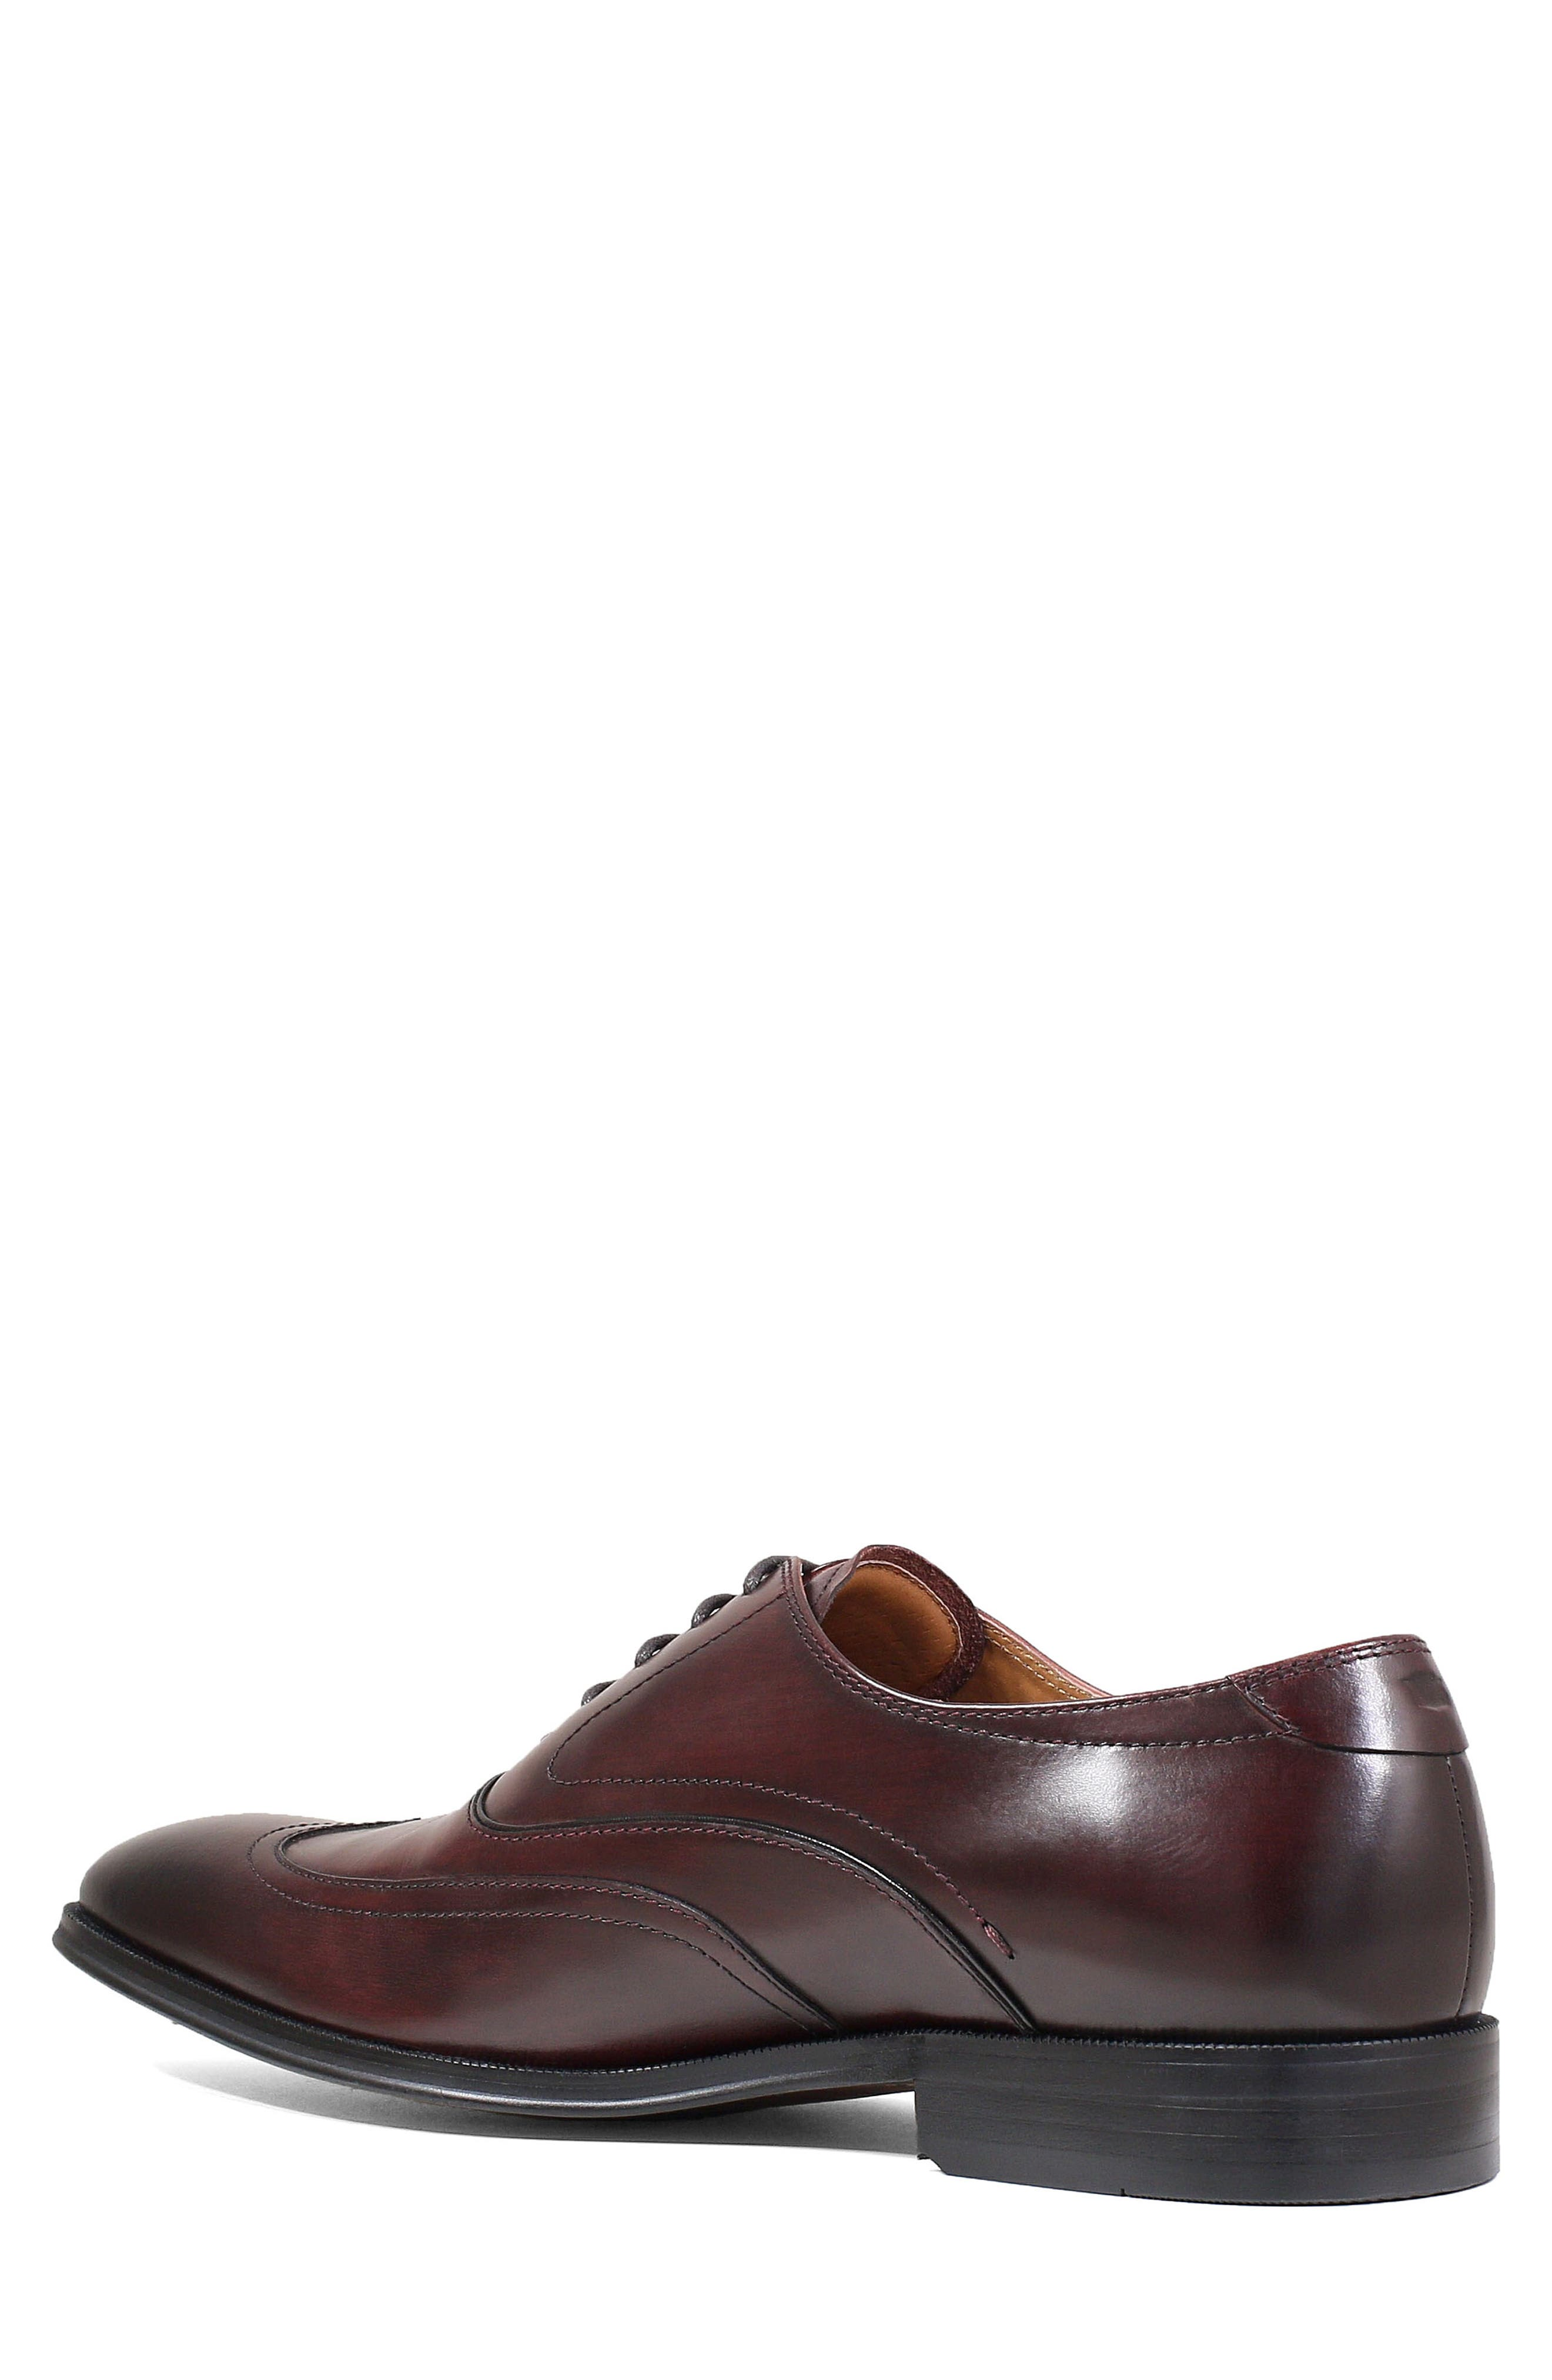 Belfast Wingtip,                             Alternate thumbnail 2, color,                             BURGUNDY LEATHER